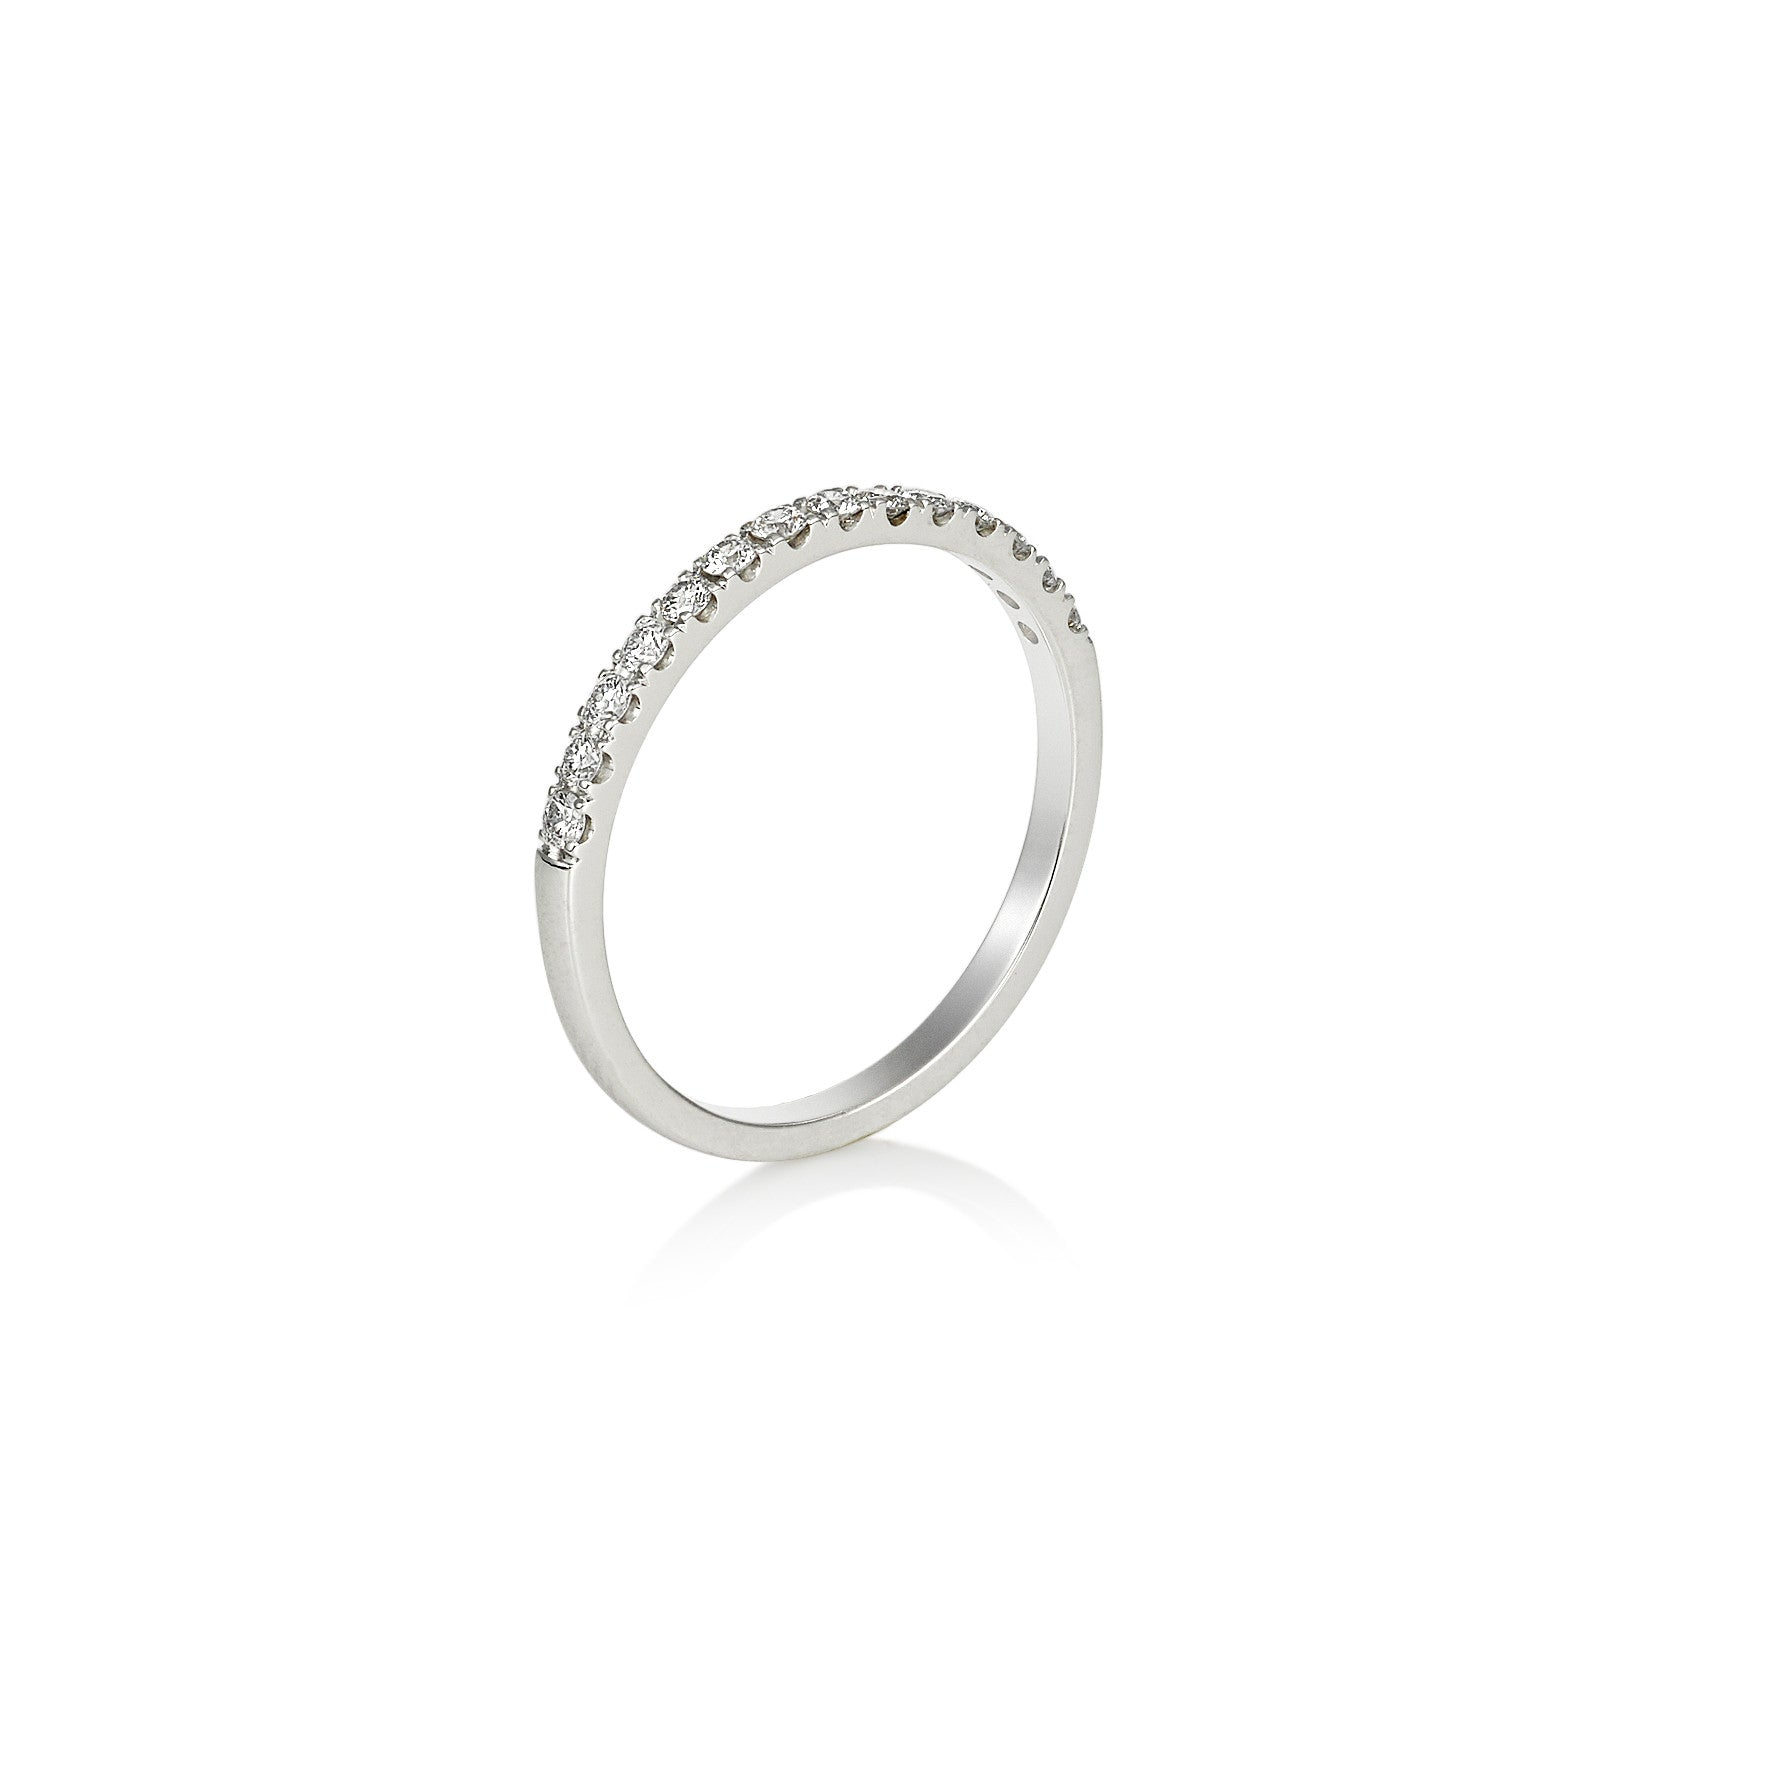 Scalloped four claw diamond wedding band